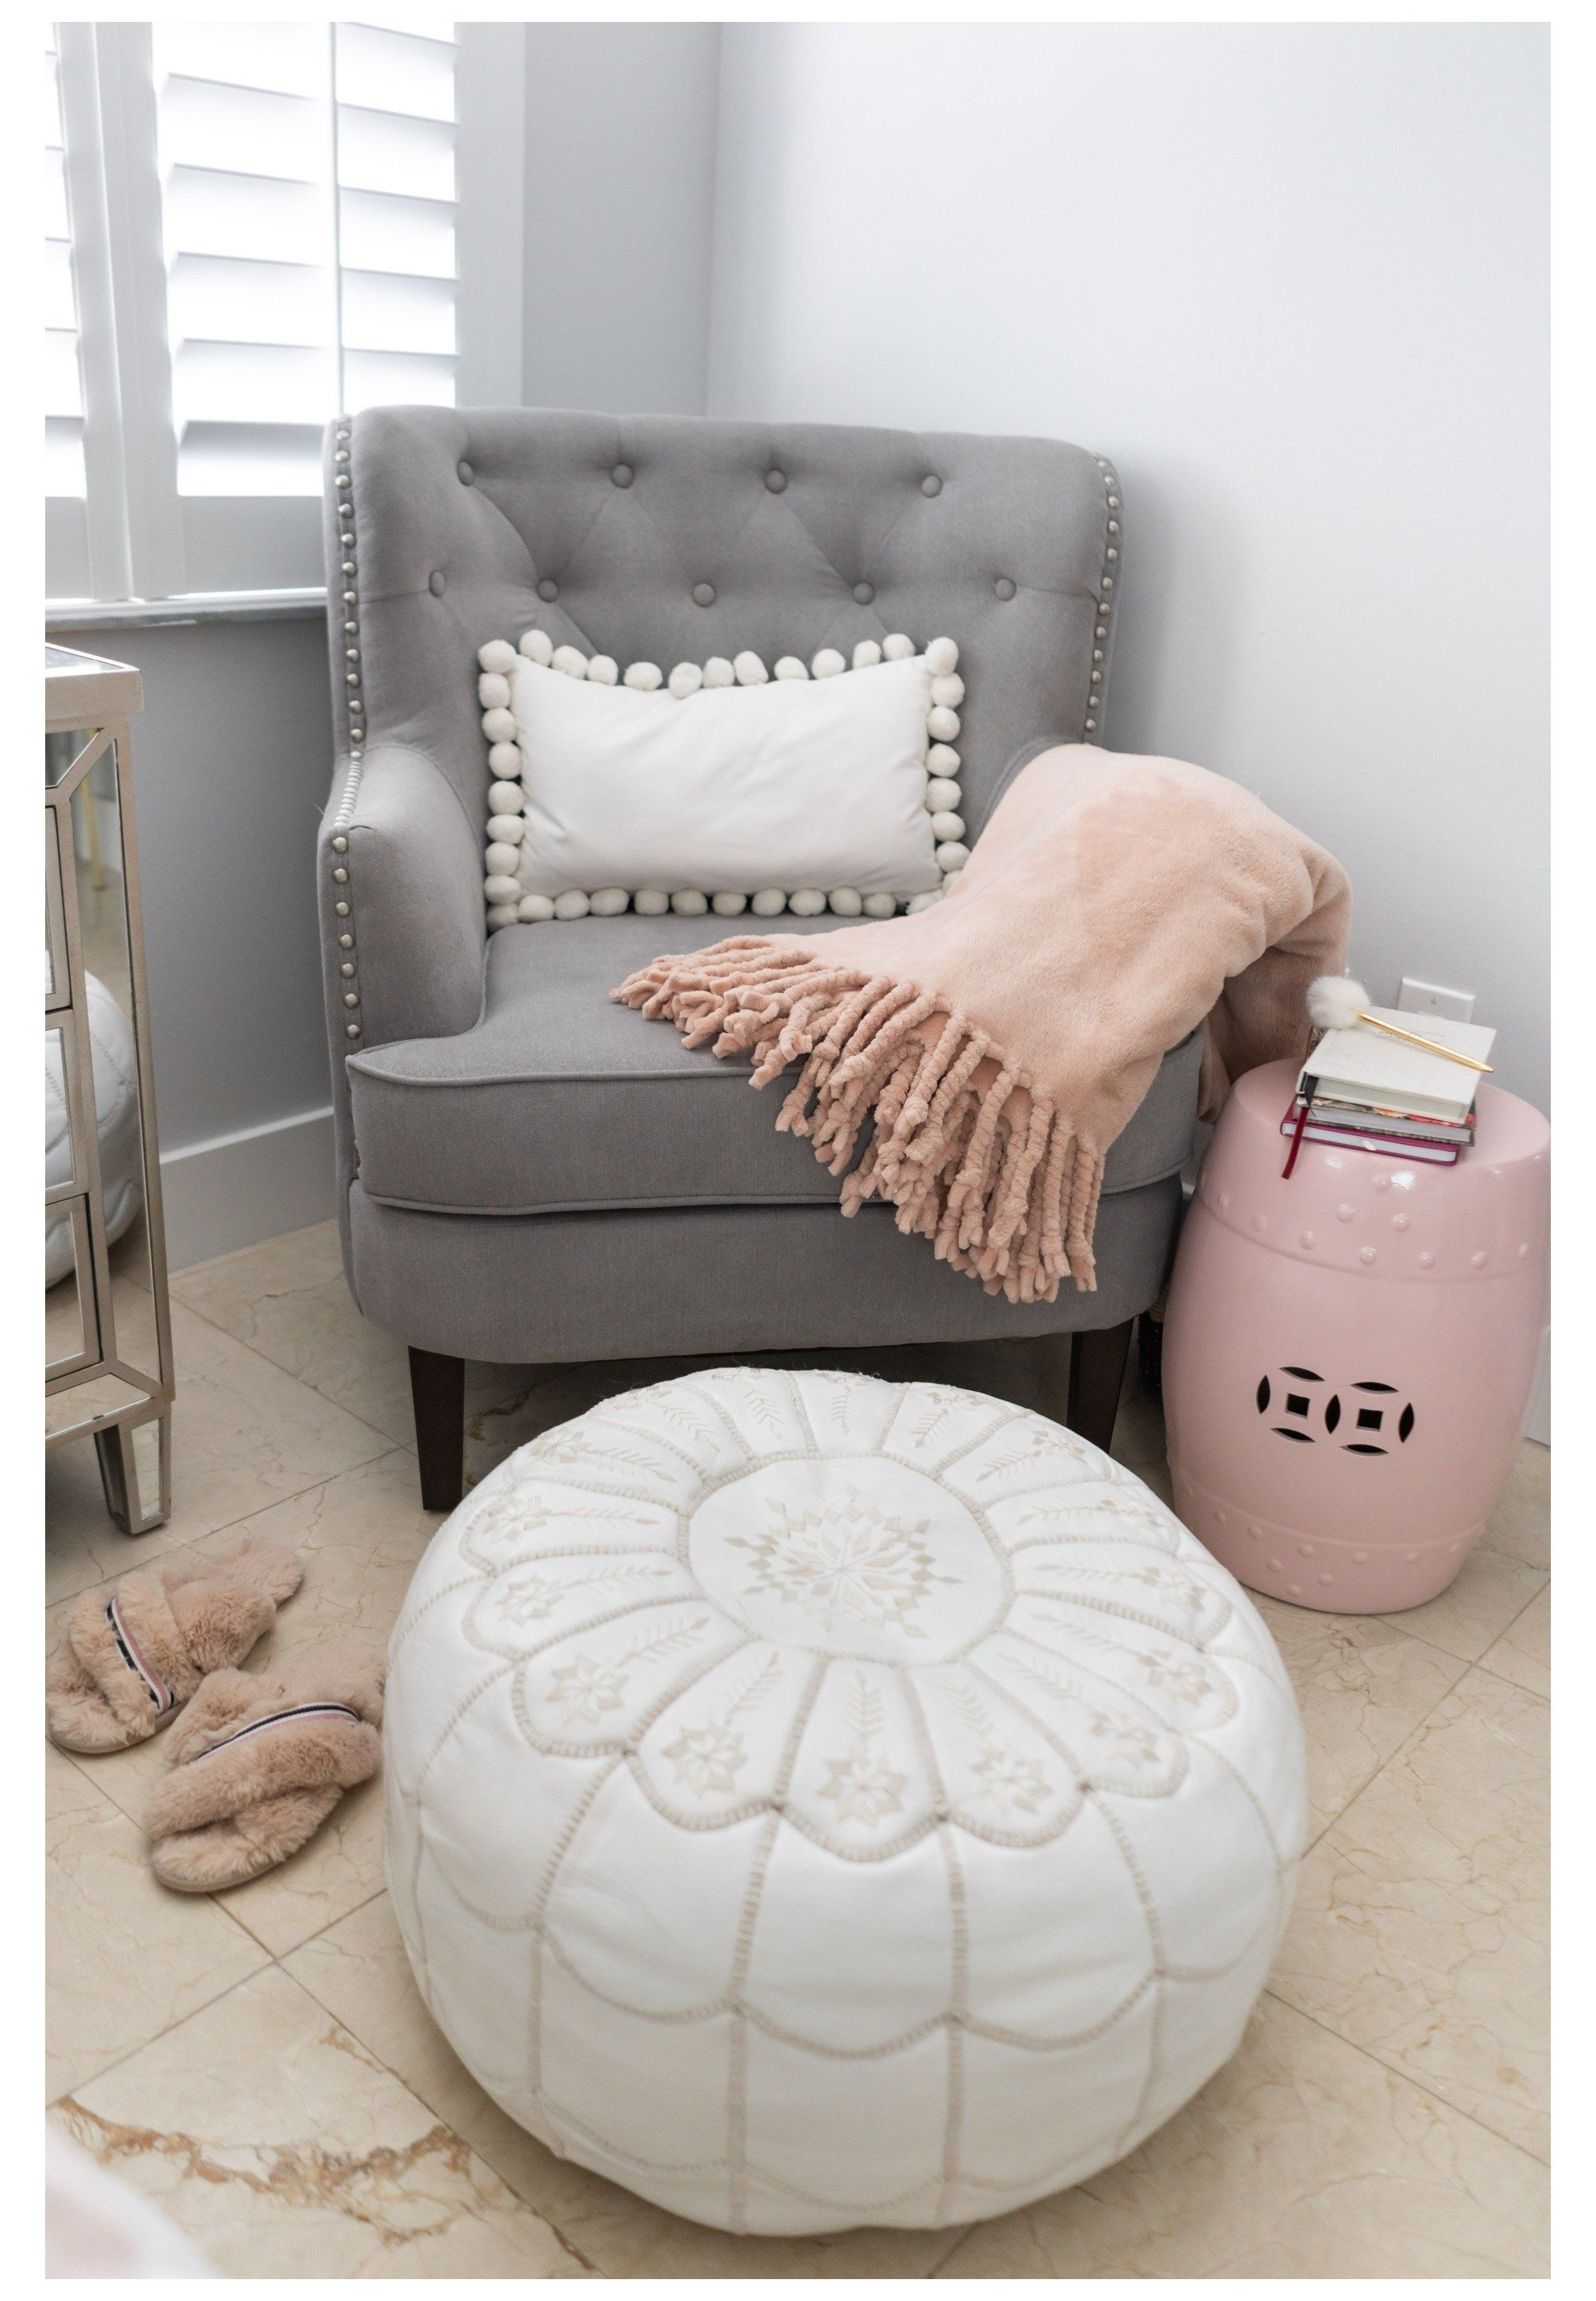 How To Make Your Bedroom Cozy Cozy Chairs For Bedroom I M Excited To Share Some Tips On How To Make Your Bedroo In 2020 Bedroom Corner Bedroom Vintage Cozy Bedroom